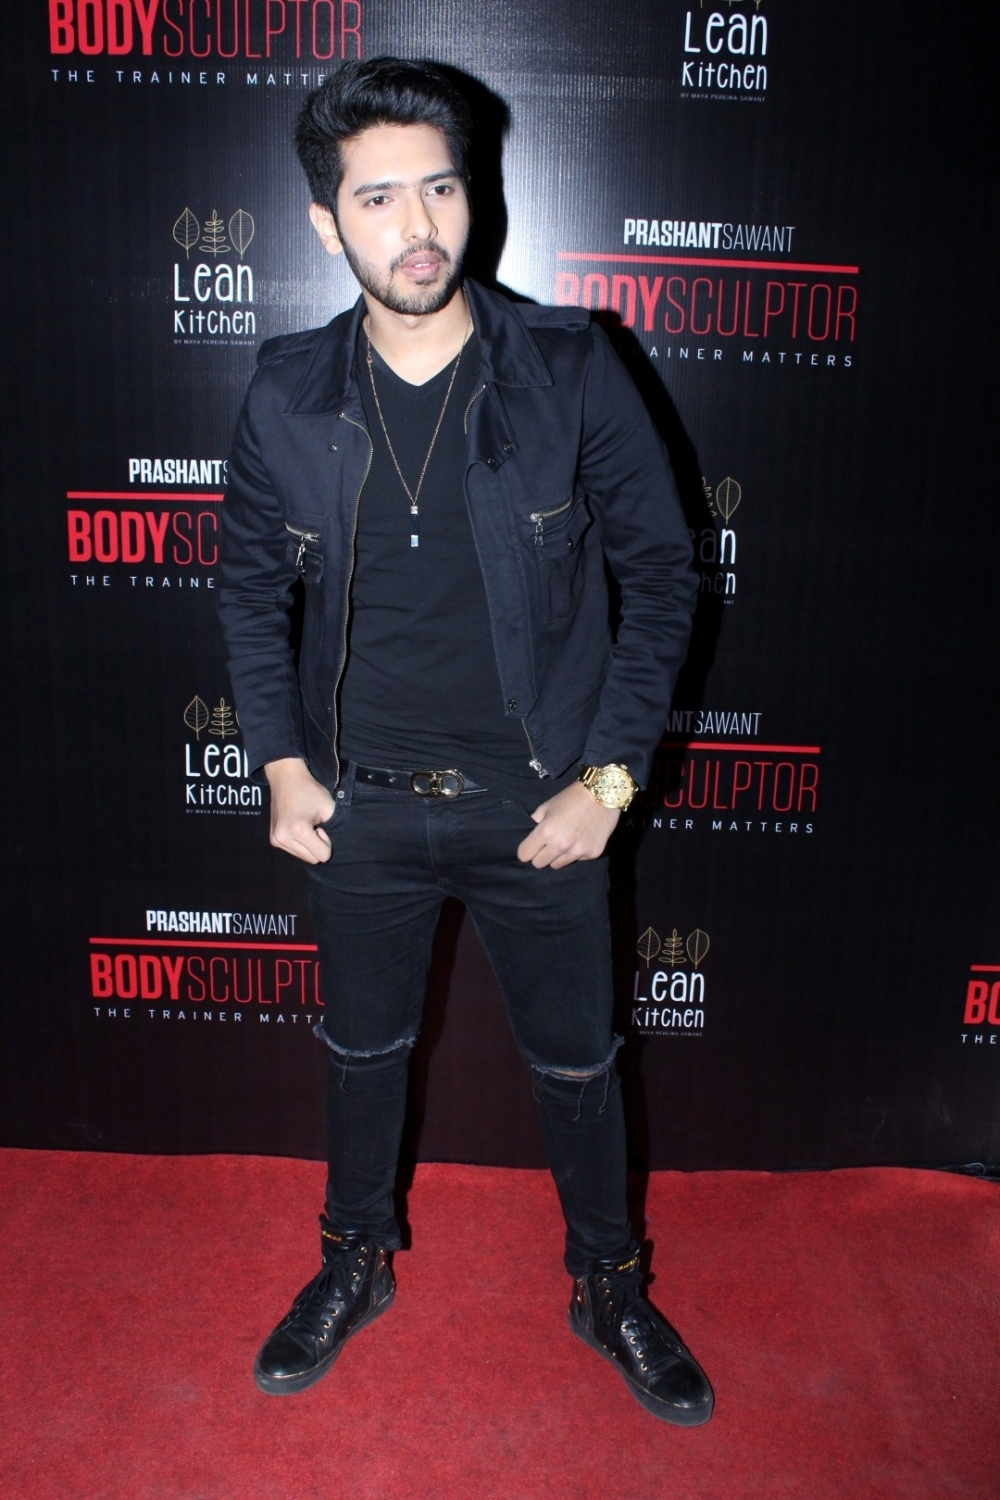 Mumbai: Singer Armaan Mallik during the launch party of Body Sculptor Gym in Mumbai on Jan 28, 2017. (Photo: IANS)